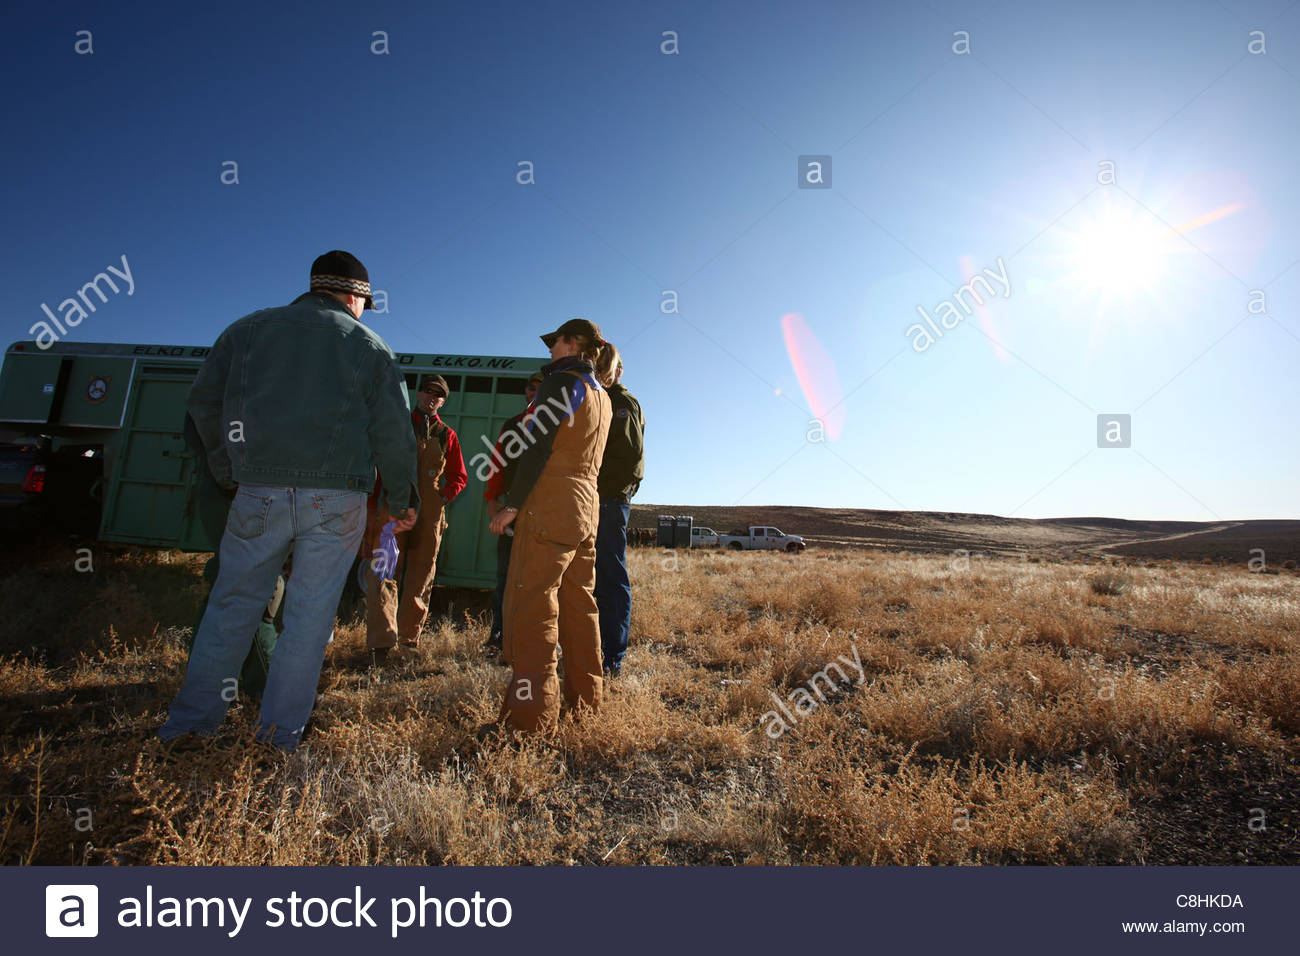 The team talks about the health of a bighorn sheep ewe. - Stock Image